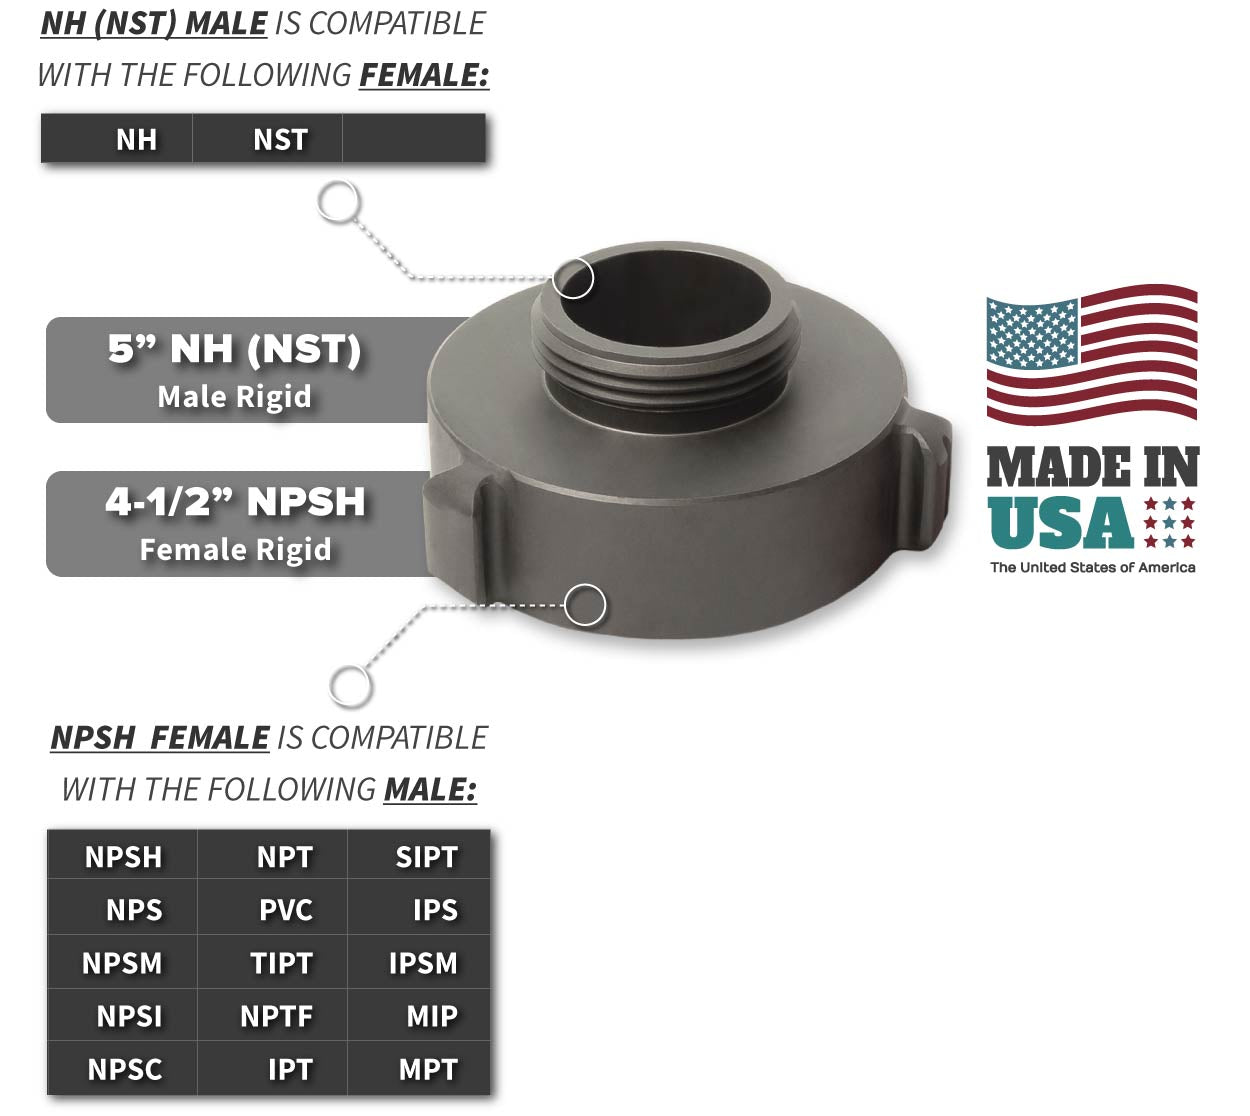 4.5 Inch NPSH Female x 5 Inch NH-NST Male Compatibility Thread Chart